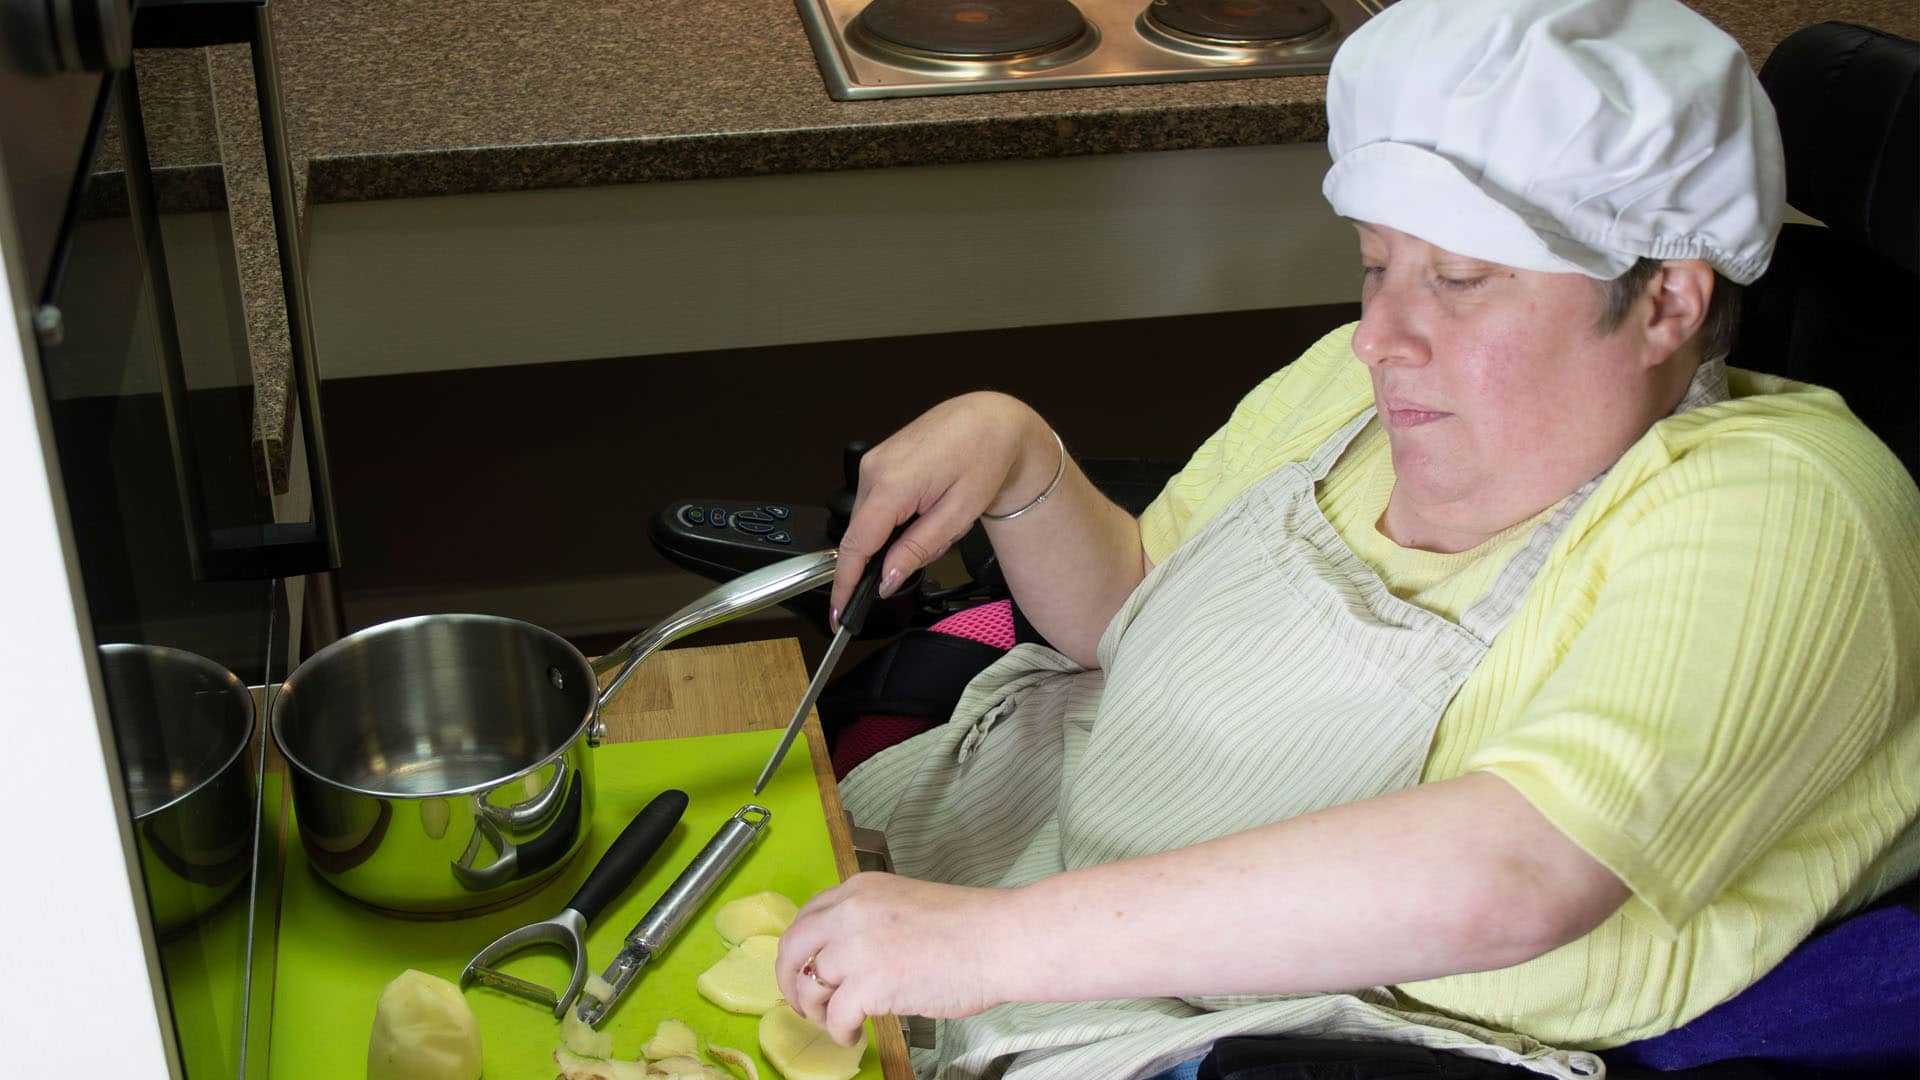 Service user in a mobility chair cooking in the Magpies' kitchen wearing a chef's hat, chopping a potato